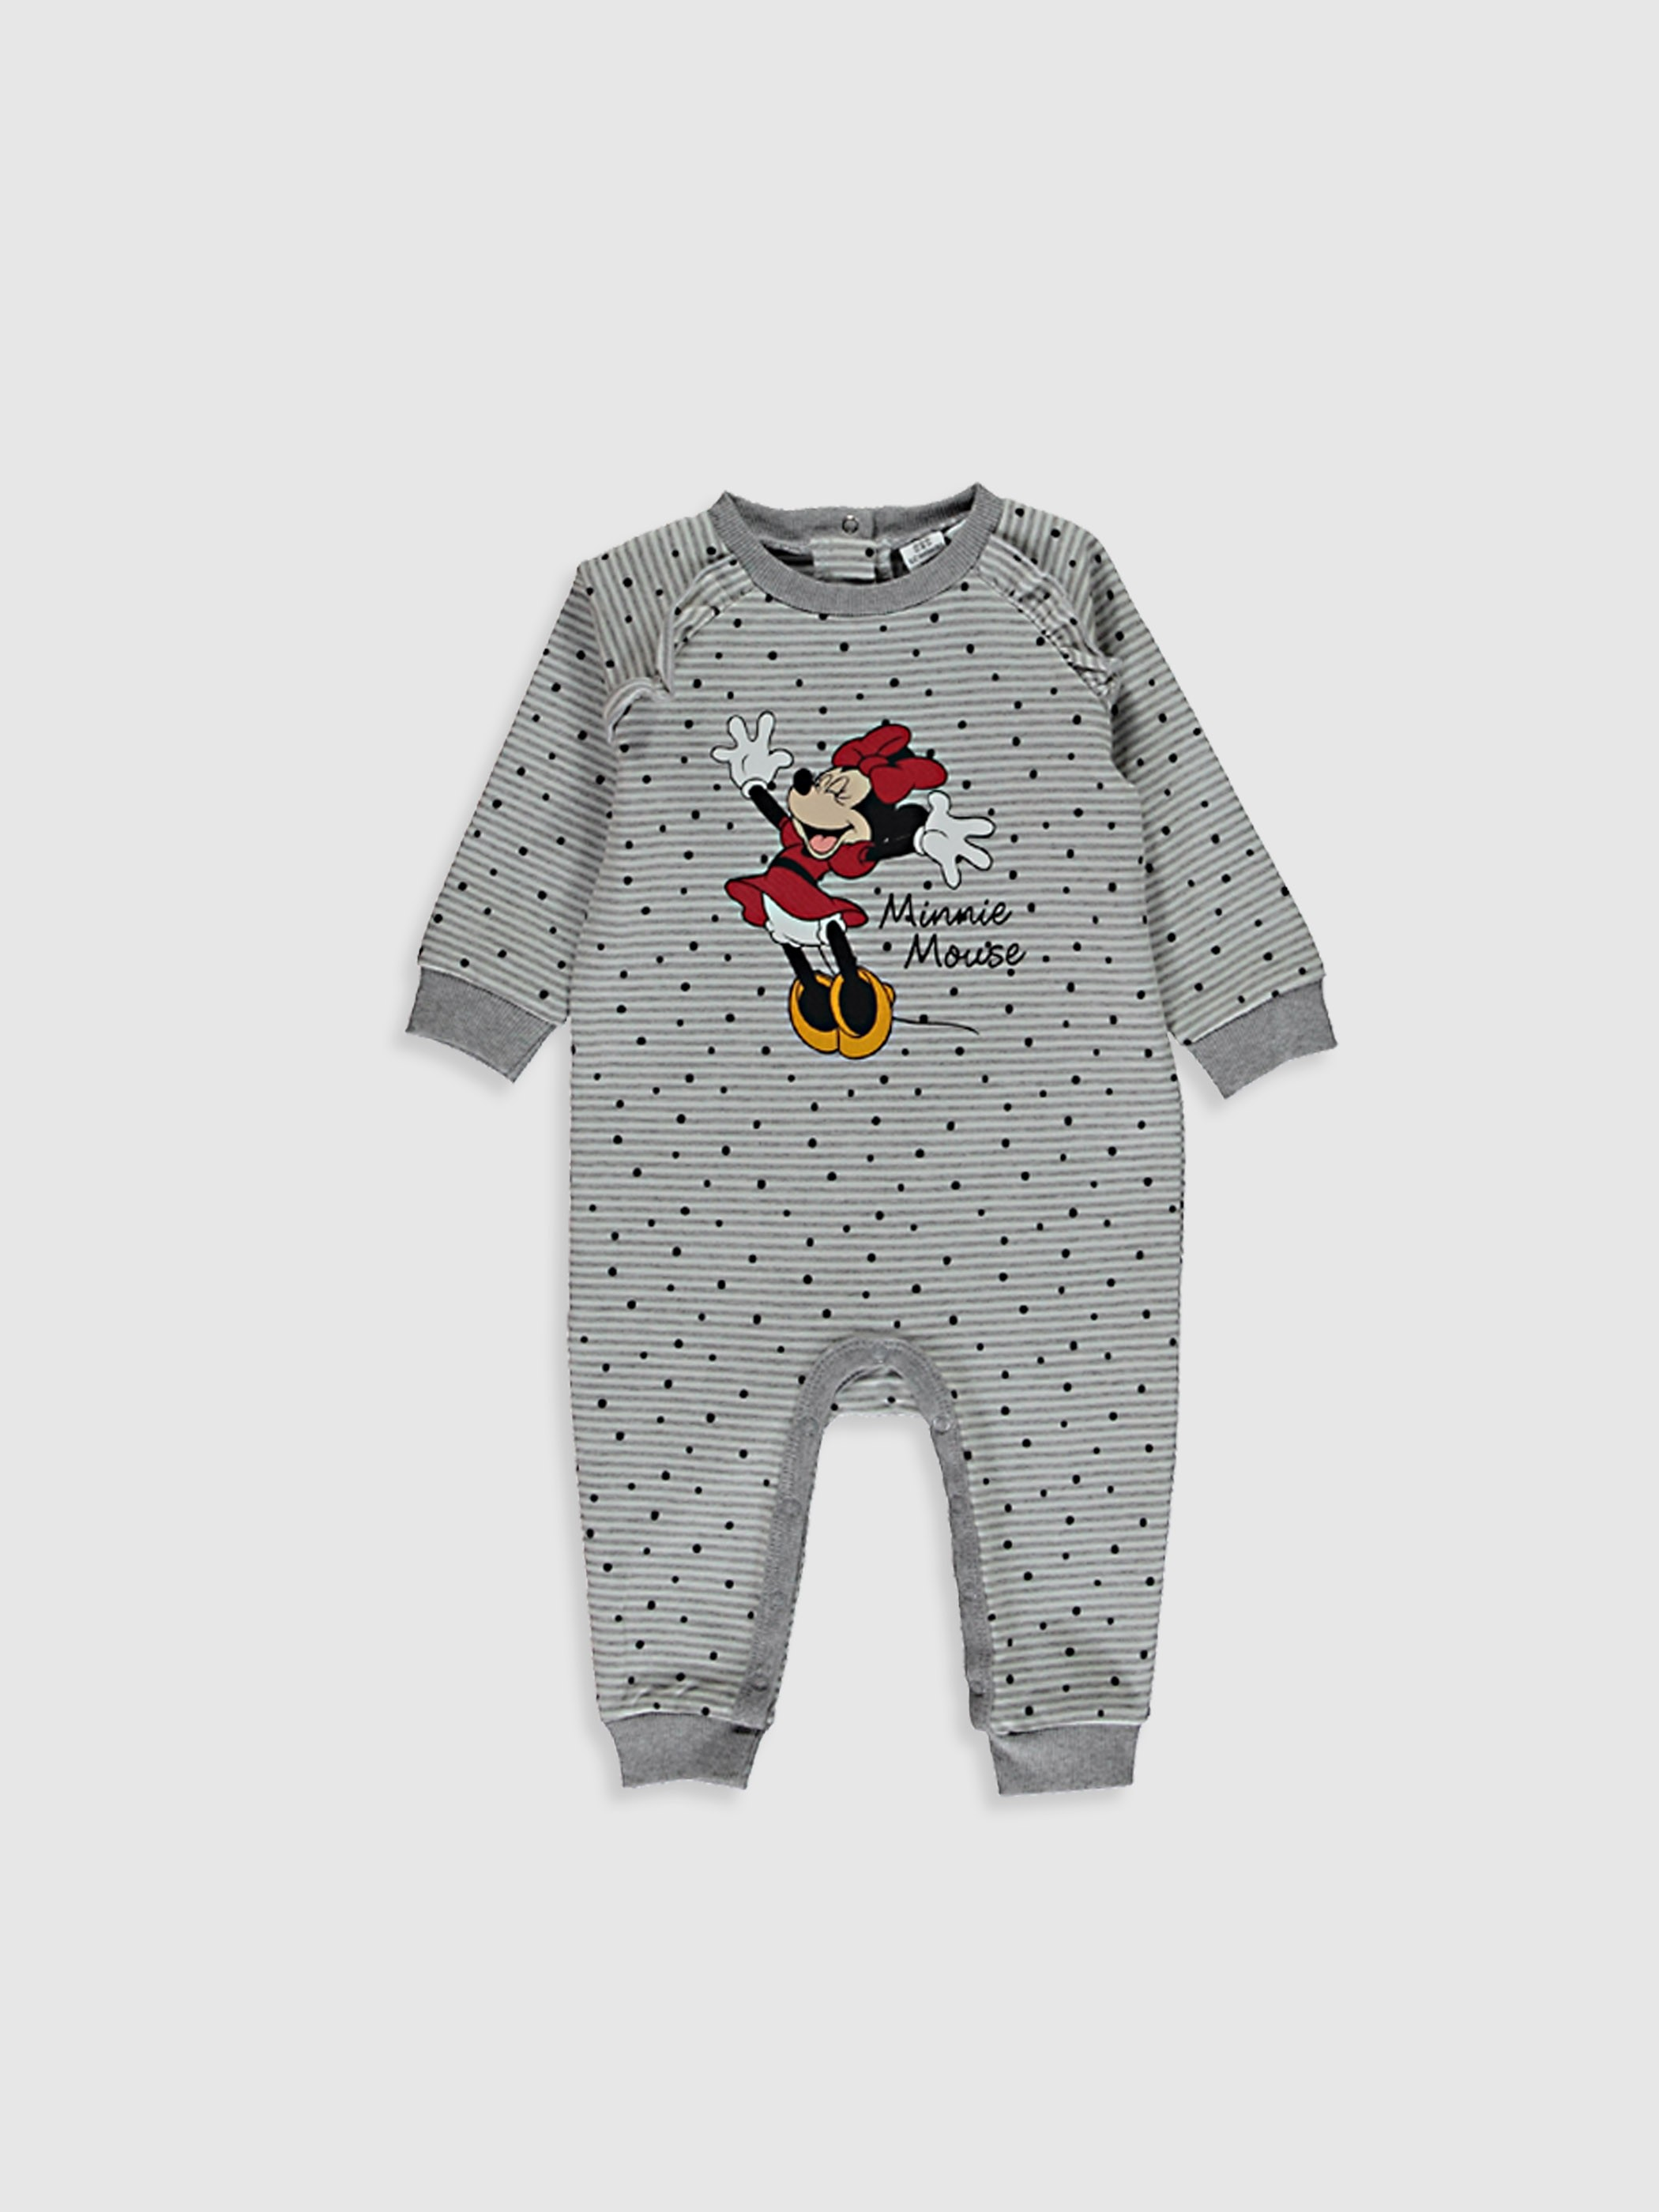 GREY - Baby Girl's Minnie Mouse Printed Jumpsuit - 0W8119Z1